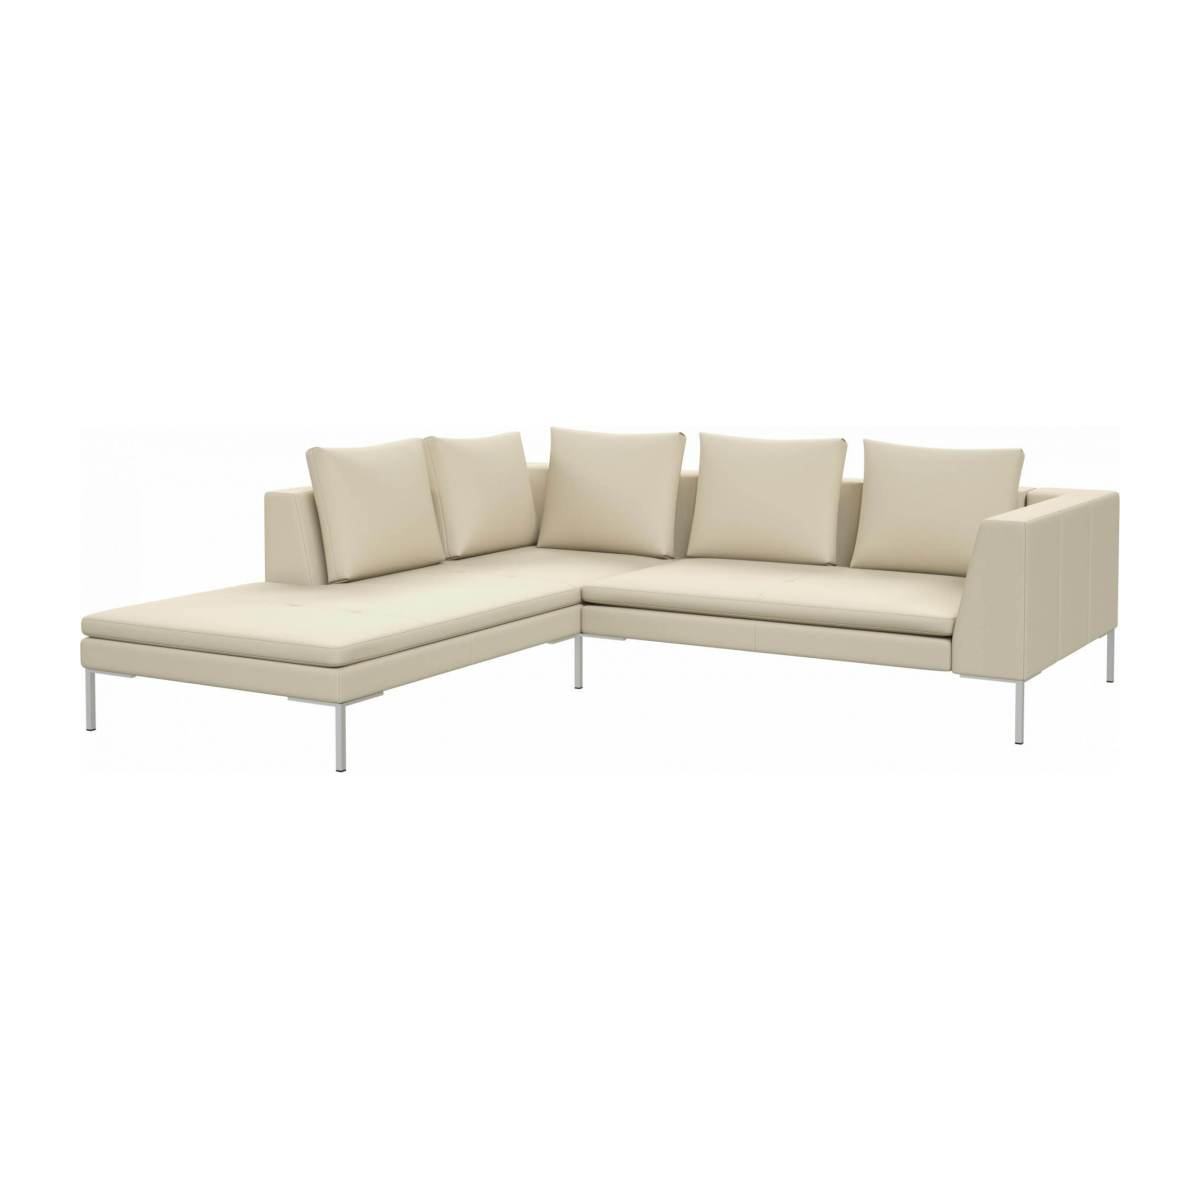 2 seater sofa with chaise longue on the left in Savoy semi-aniline leather, off white  n°2